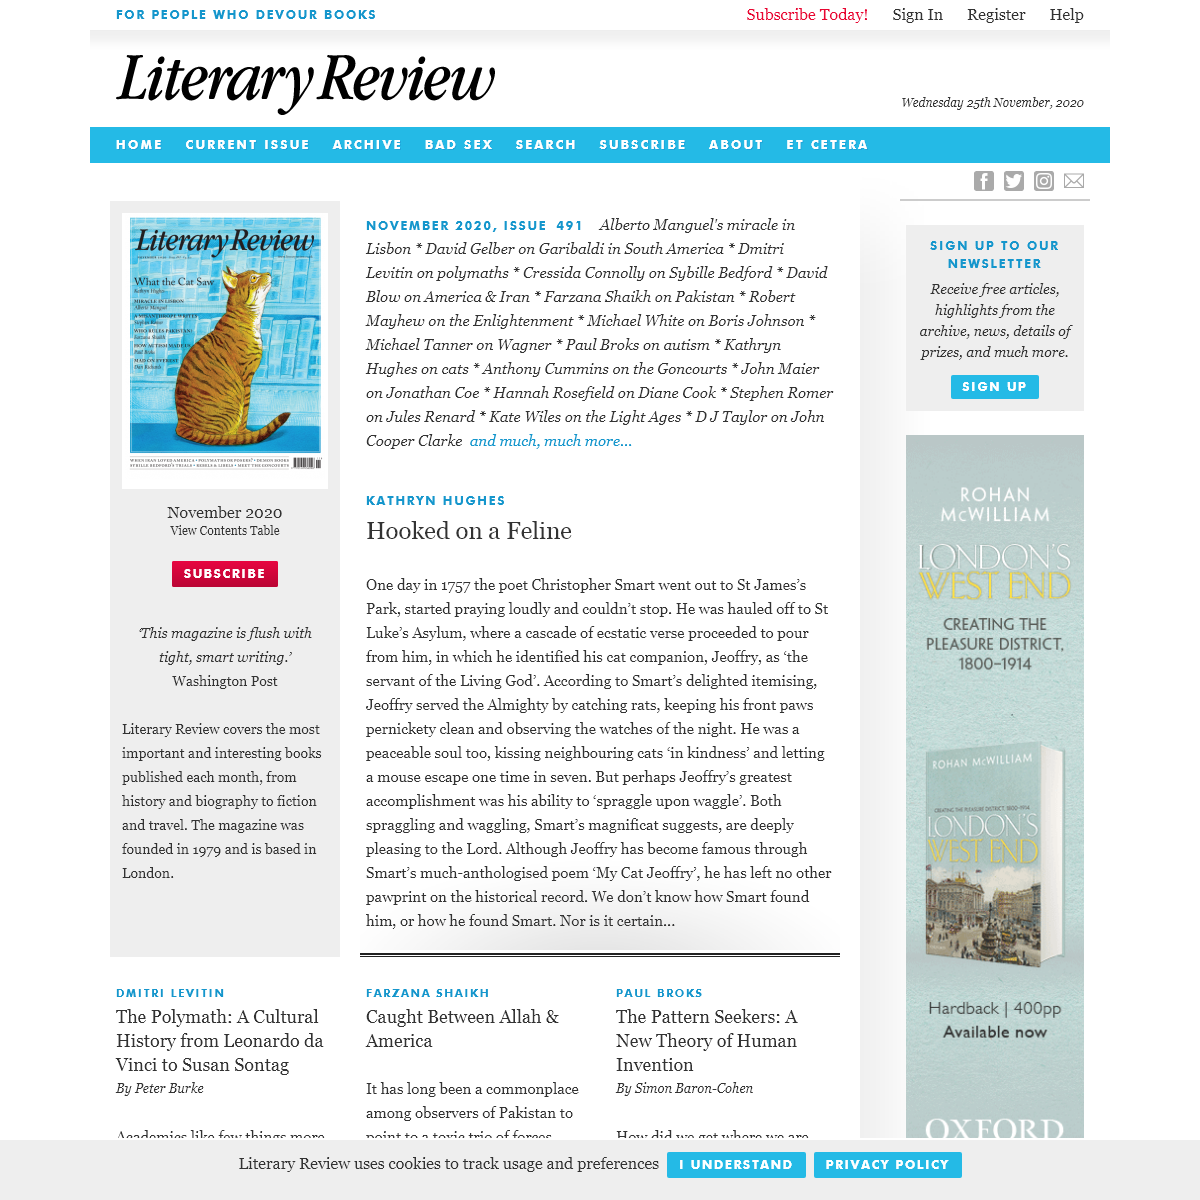 Literary Review - For People Who Devour Books